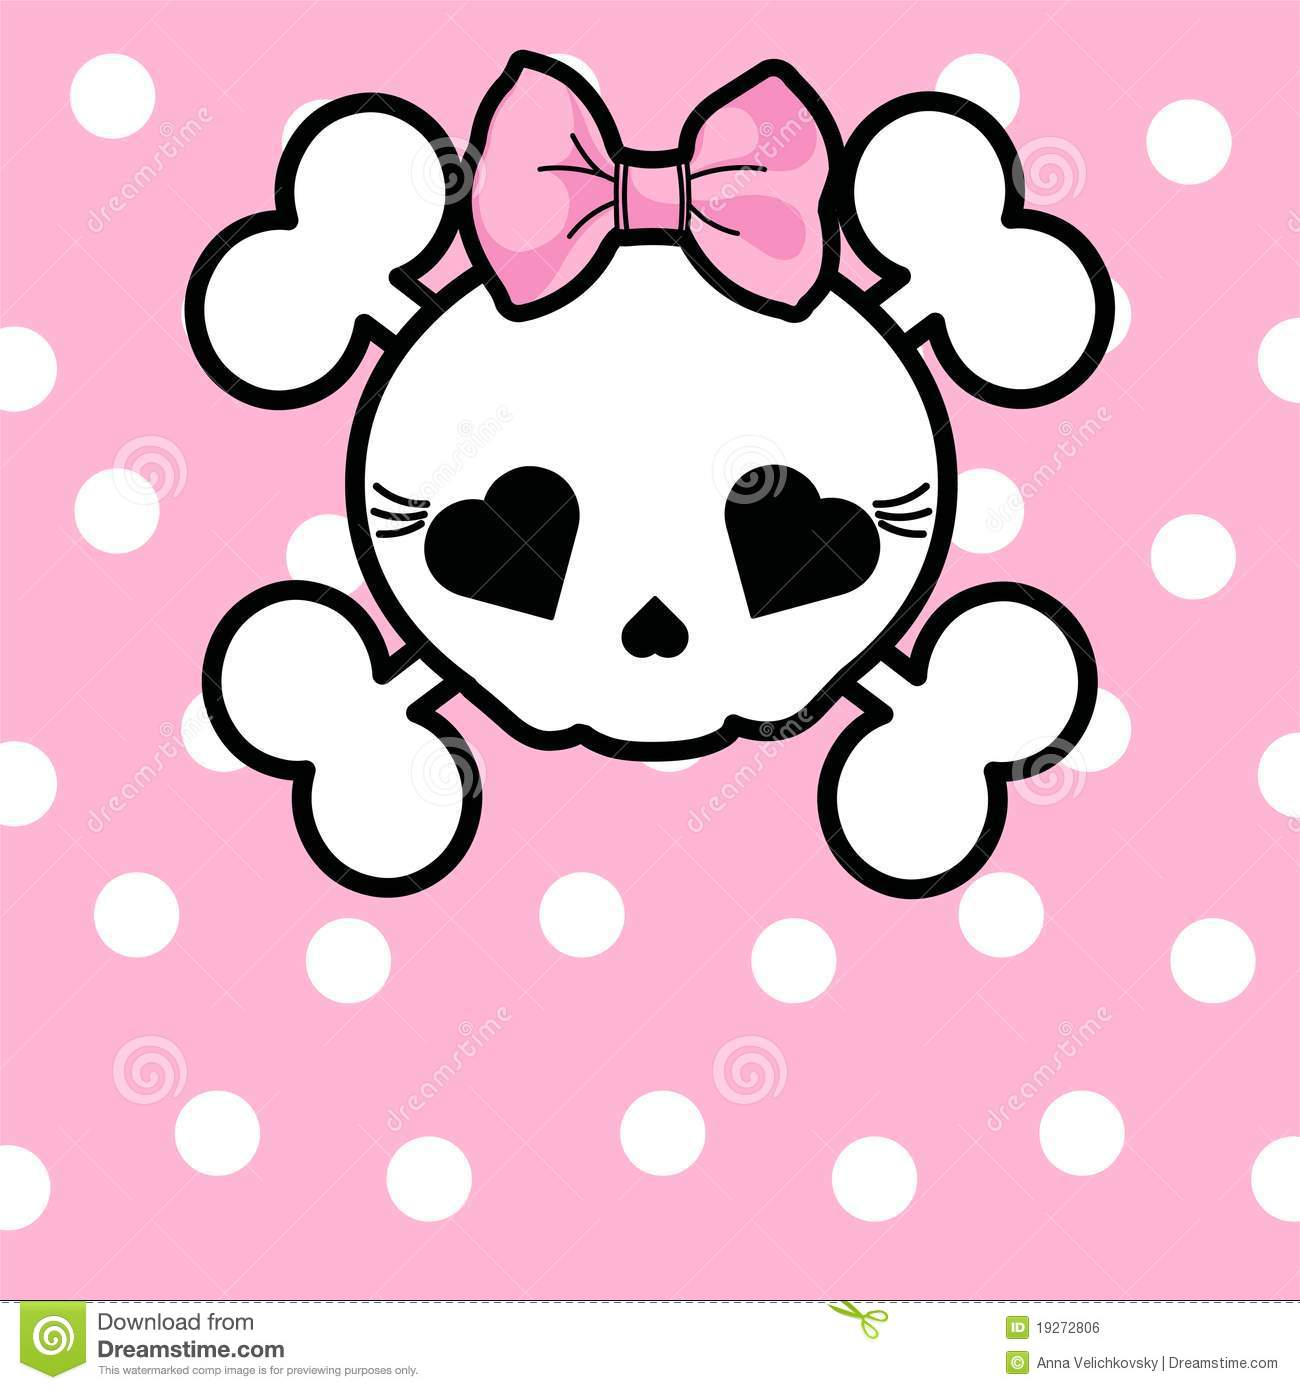 Cute Skull With Bow Stock Vector. Illustration Of